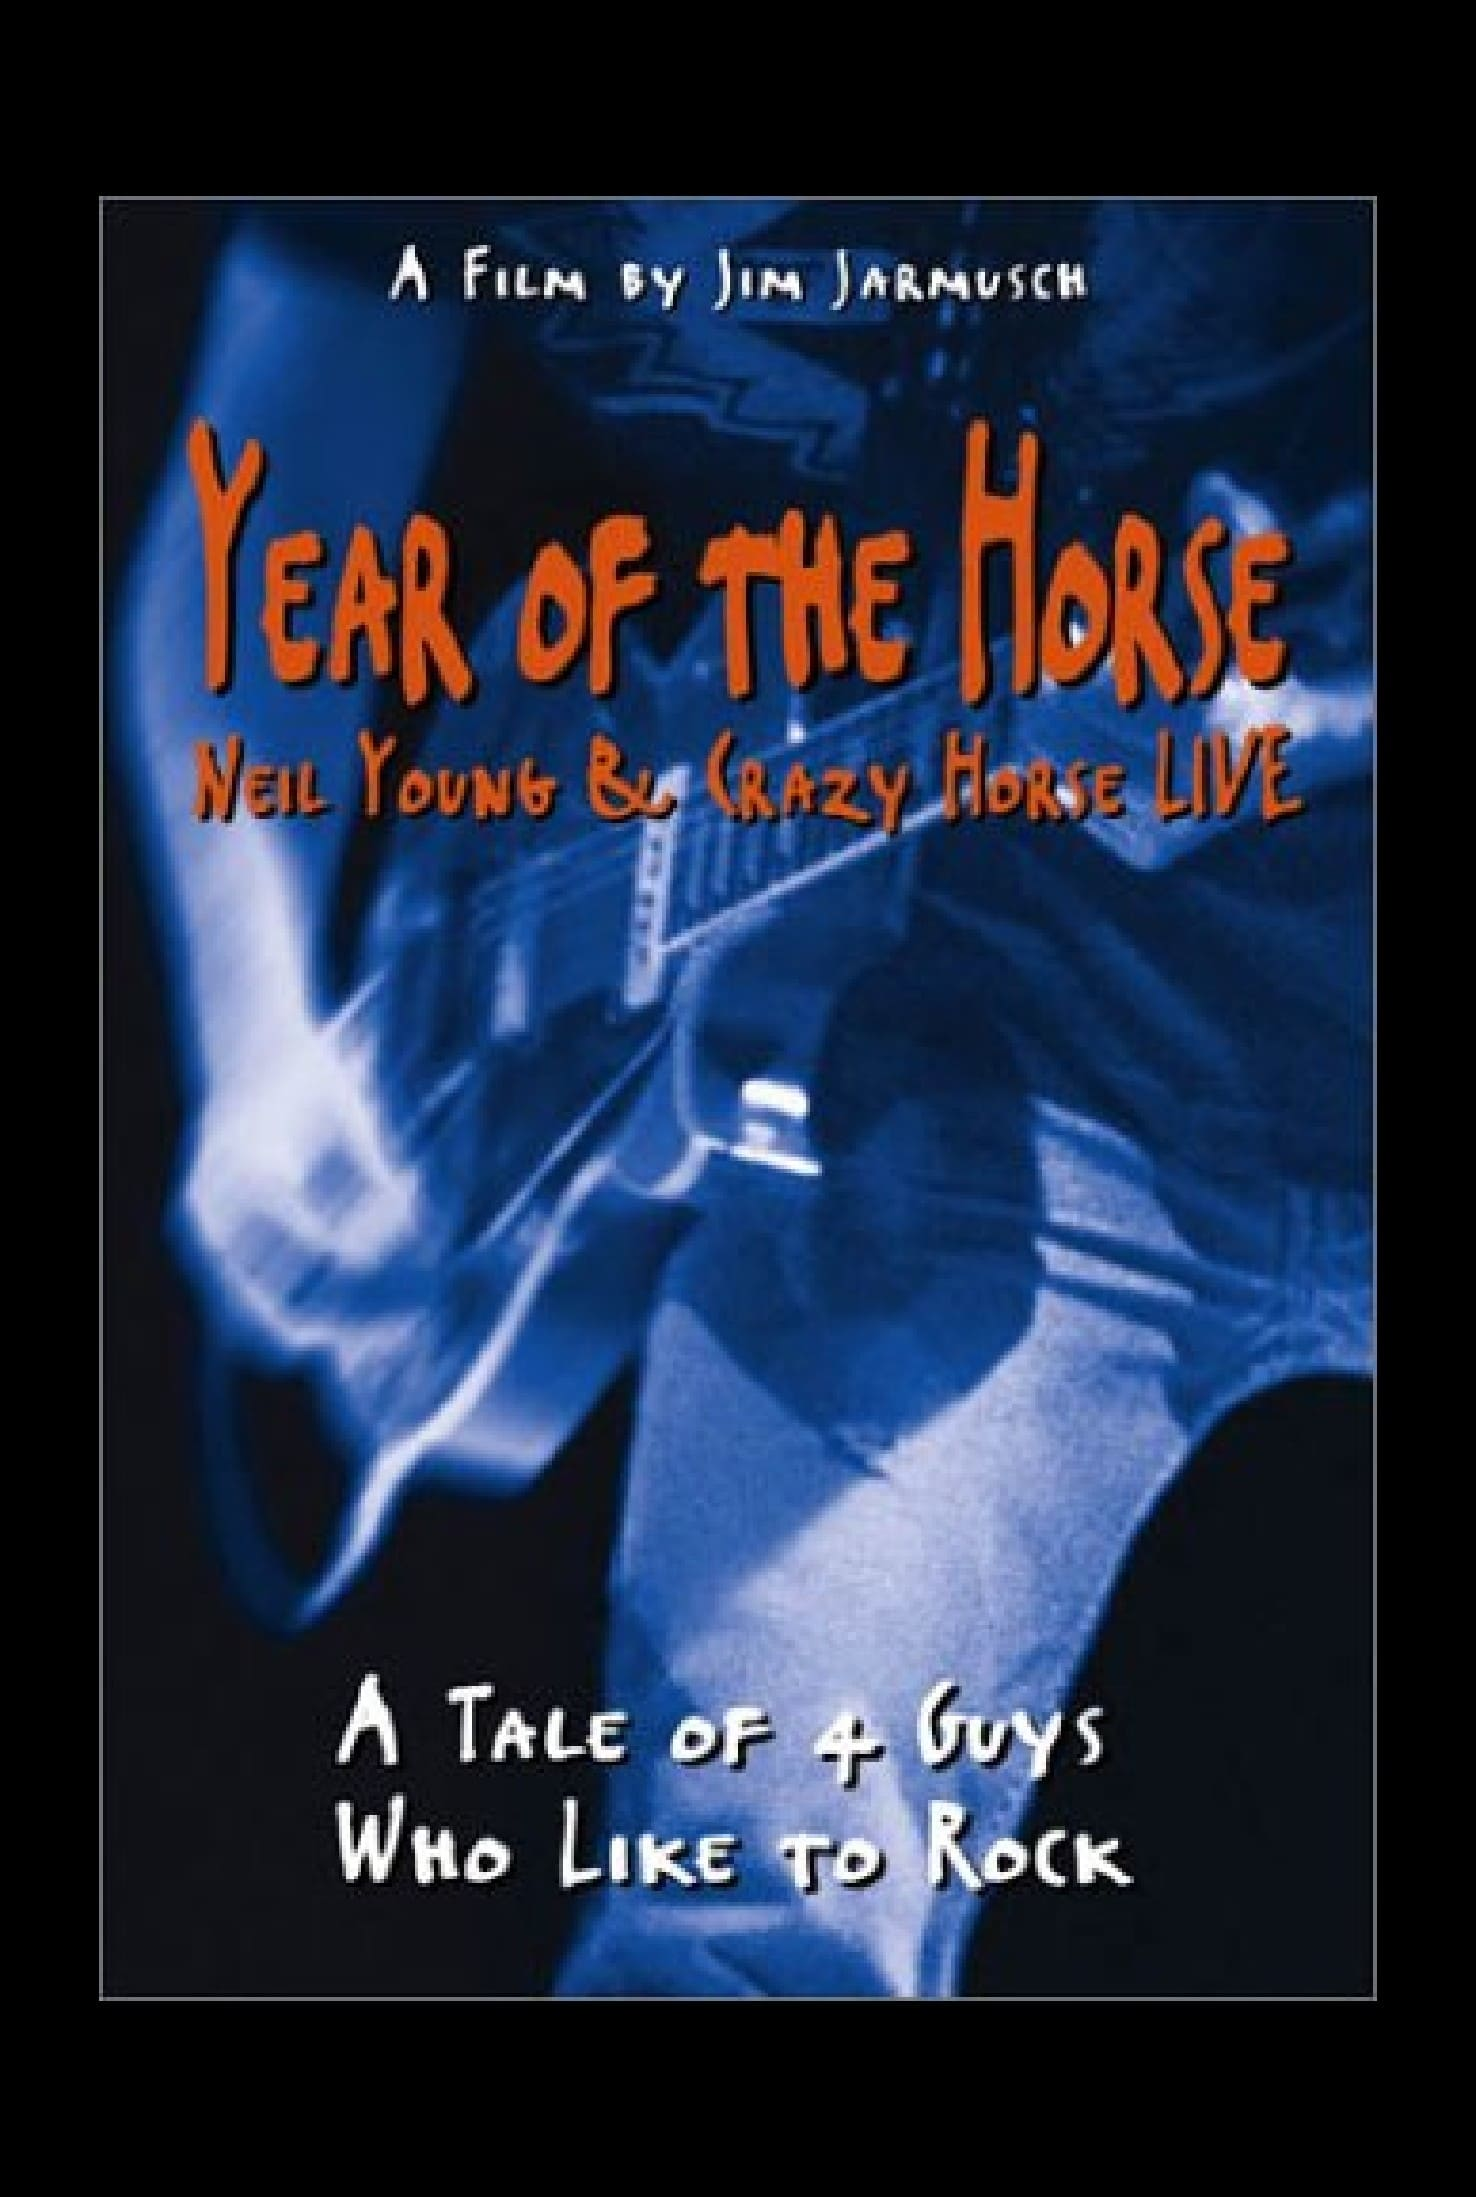 Year of the Horse: Neil Young and Crazy Horse Live Trailer